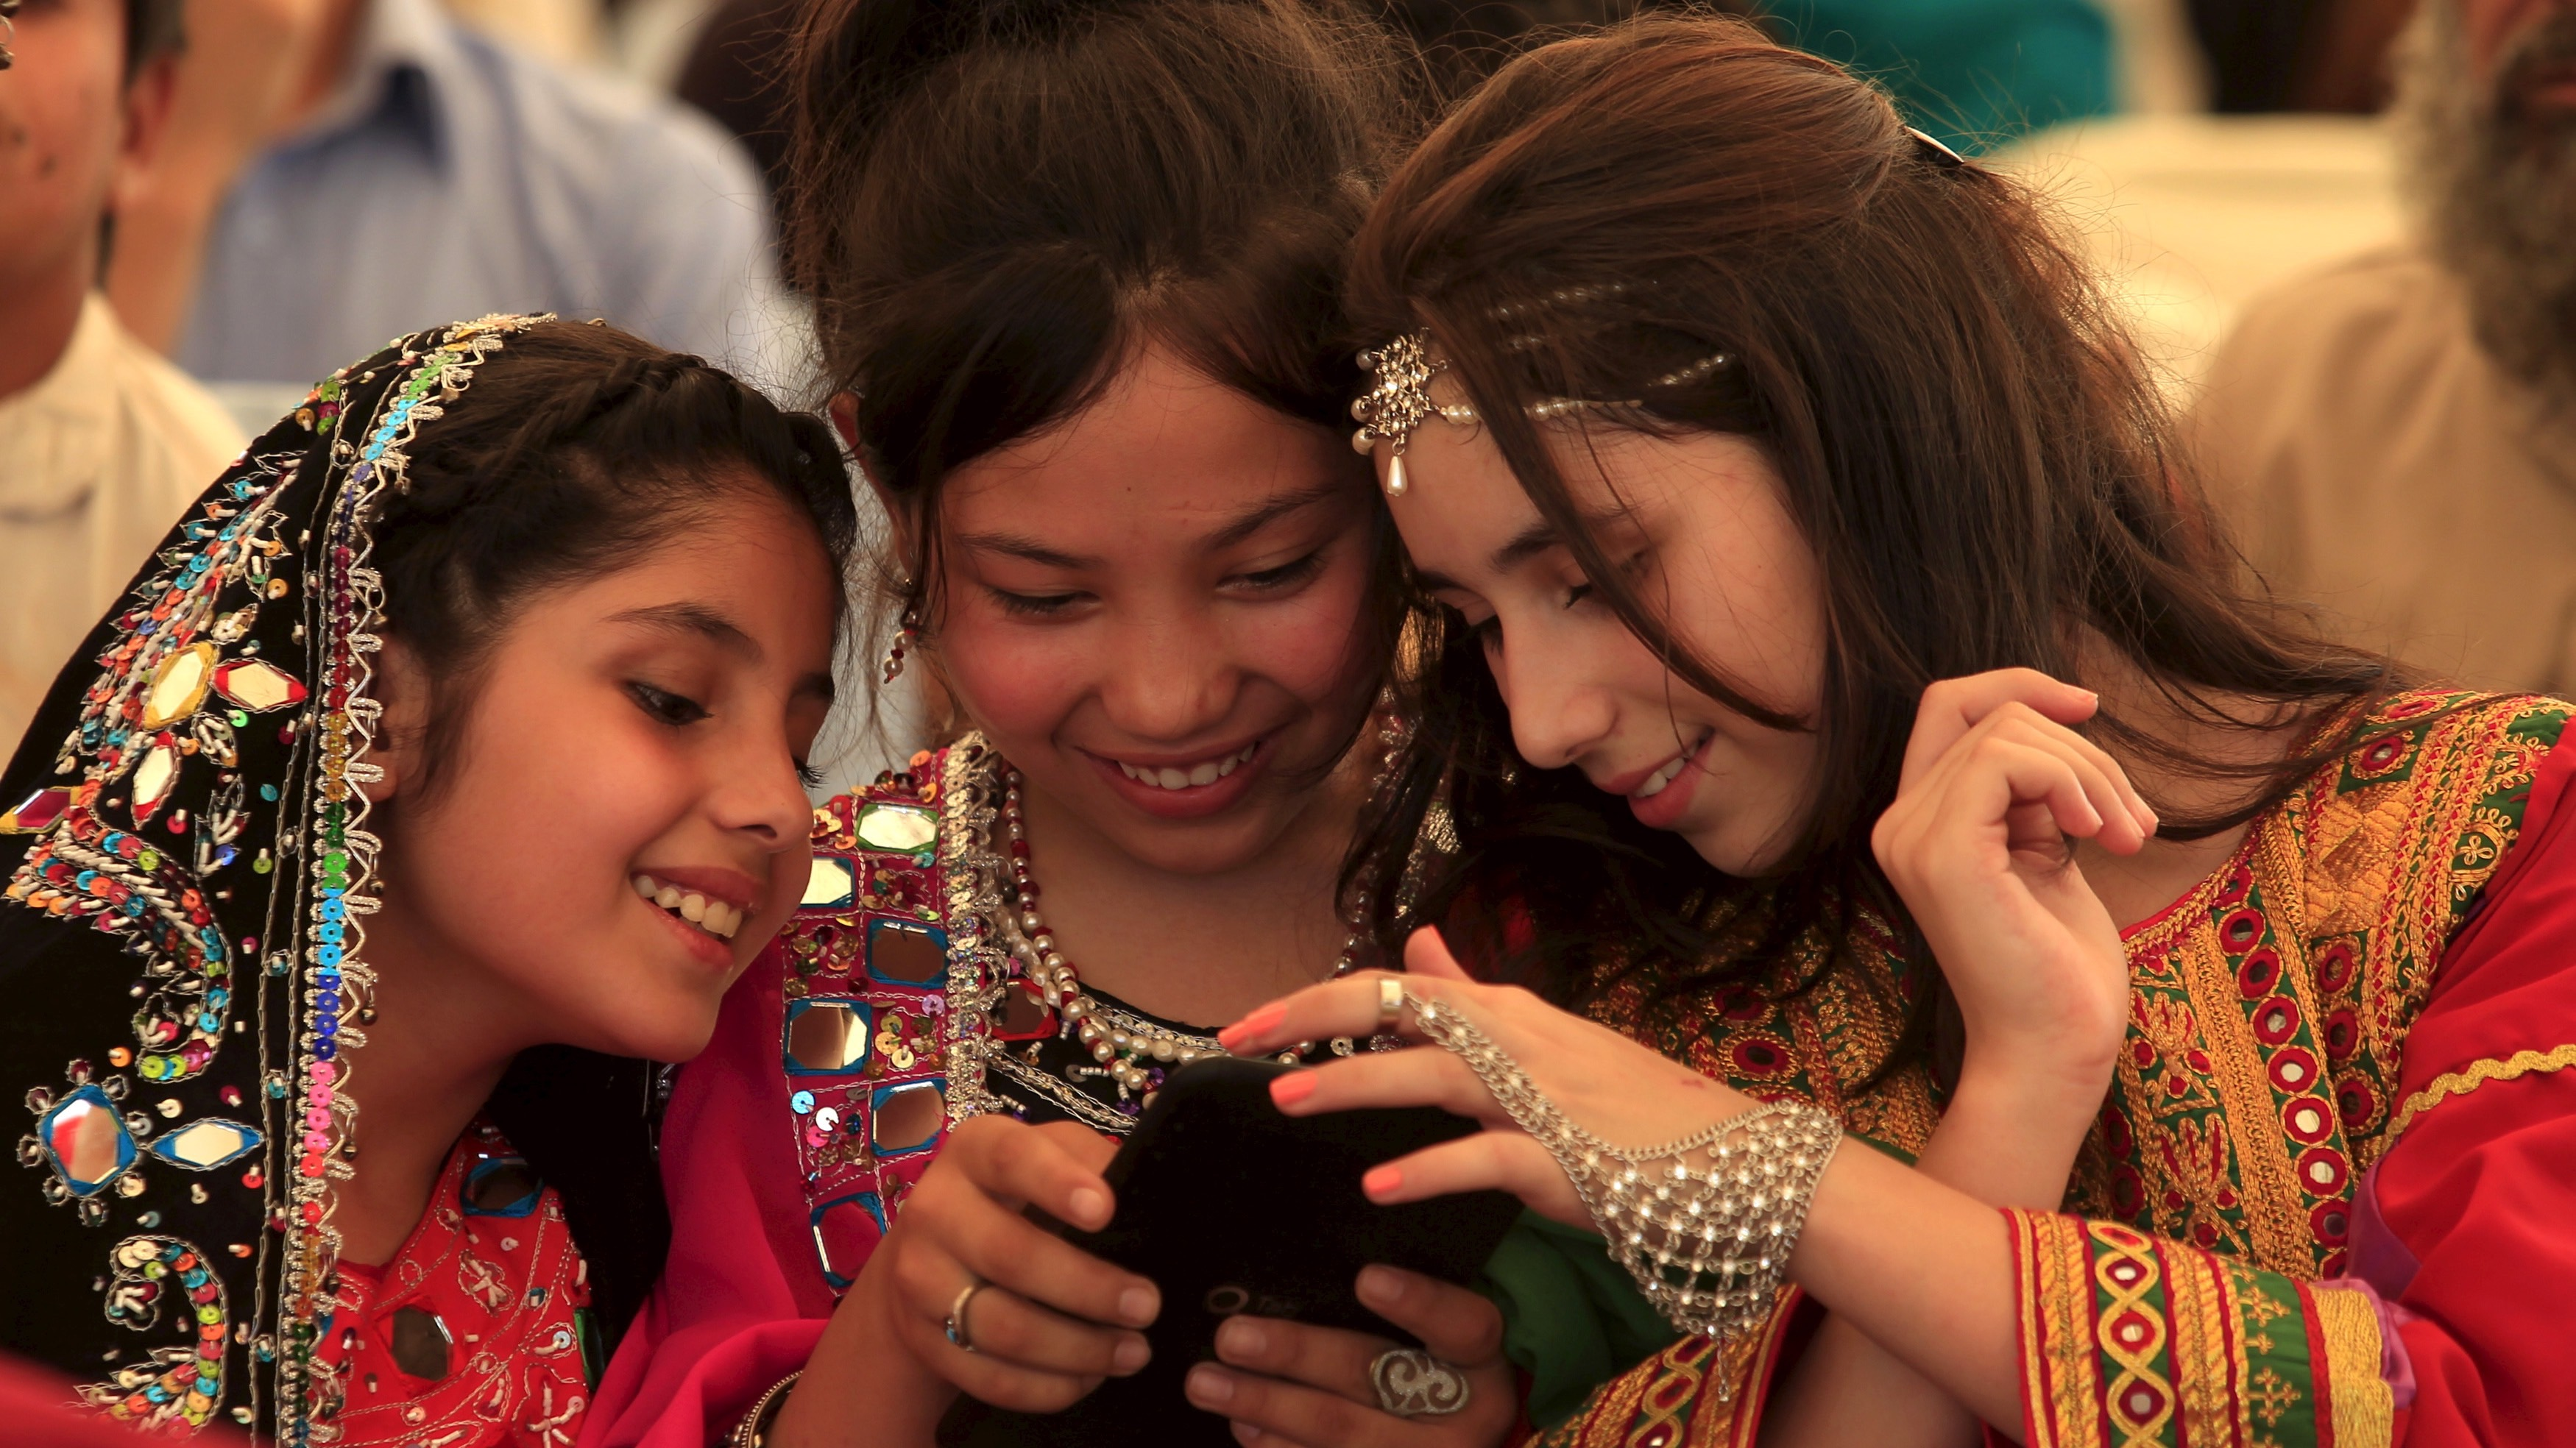 Afghan refugee girls wearing traditional dresses play with a mobile phone while watching a friendly cricket match between Pakistani students and a team from the Afghanistan Embassy during an event on the eve of Afghan Refugee Day in Islamabad, Pakistan, June 16, 2015. REUTERS/Faisal Mahmood   - RTX1GQXA